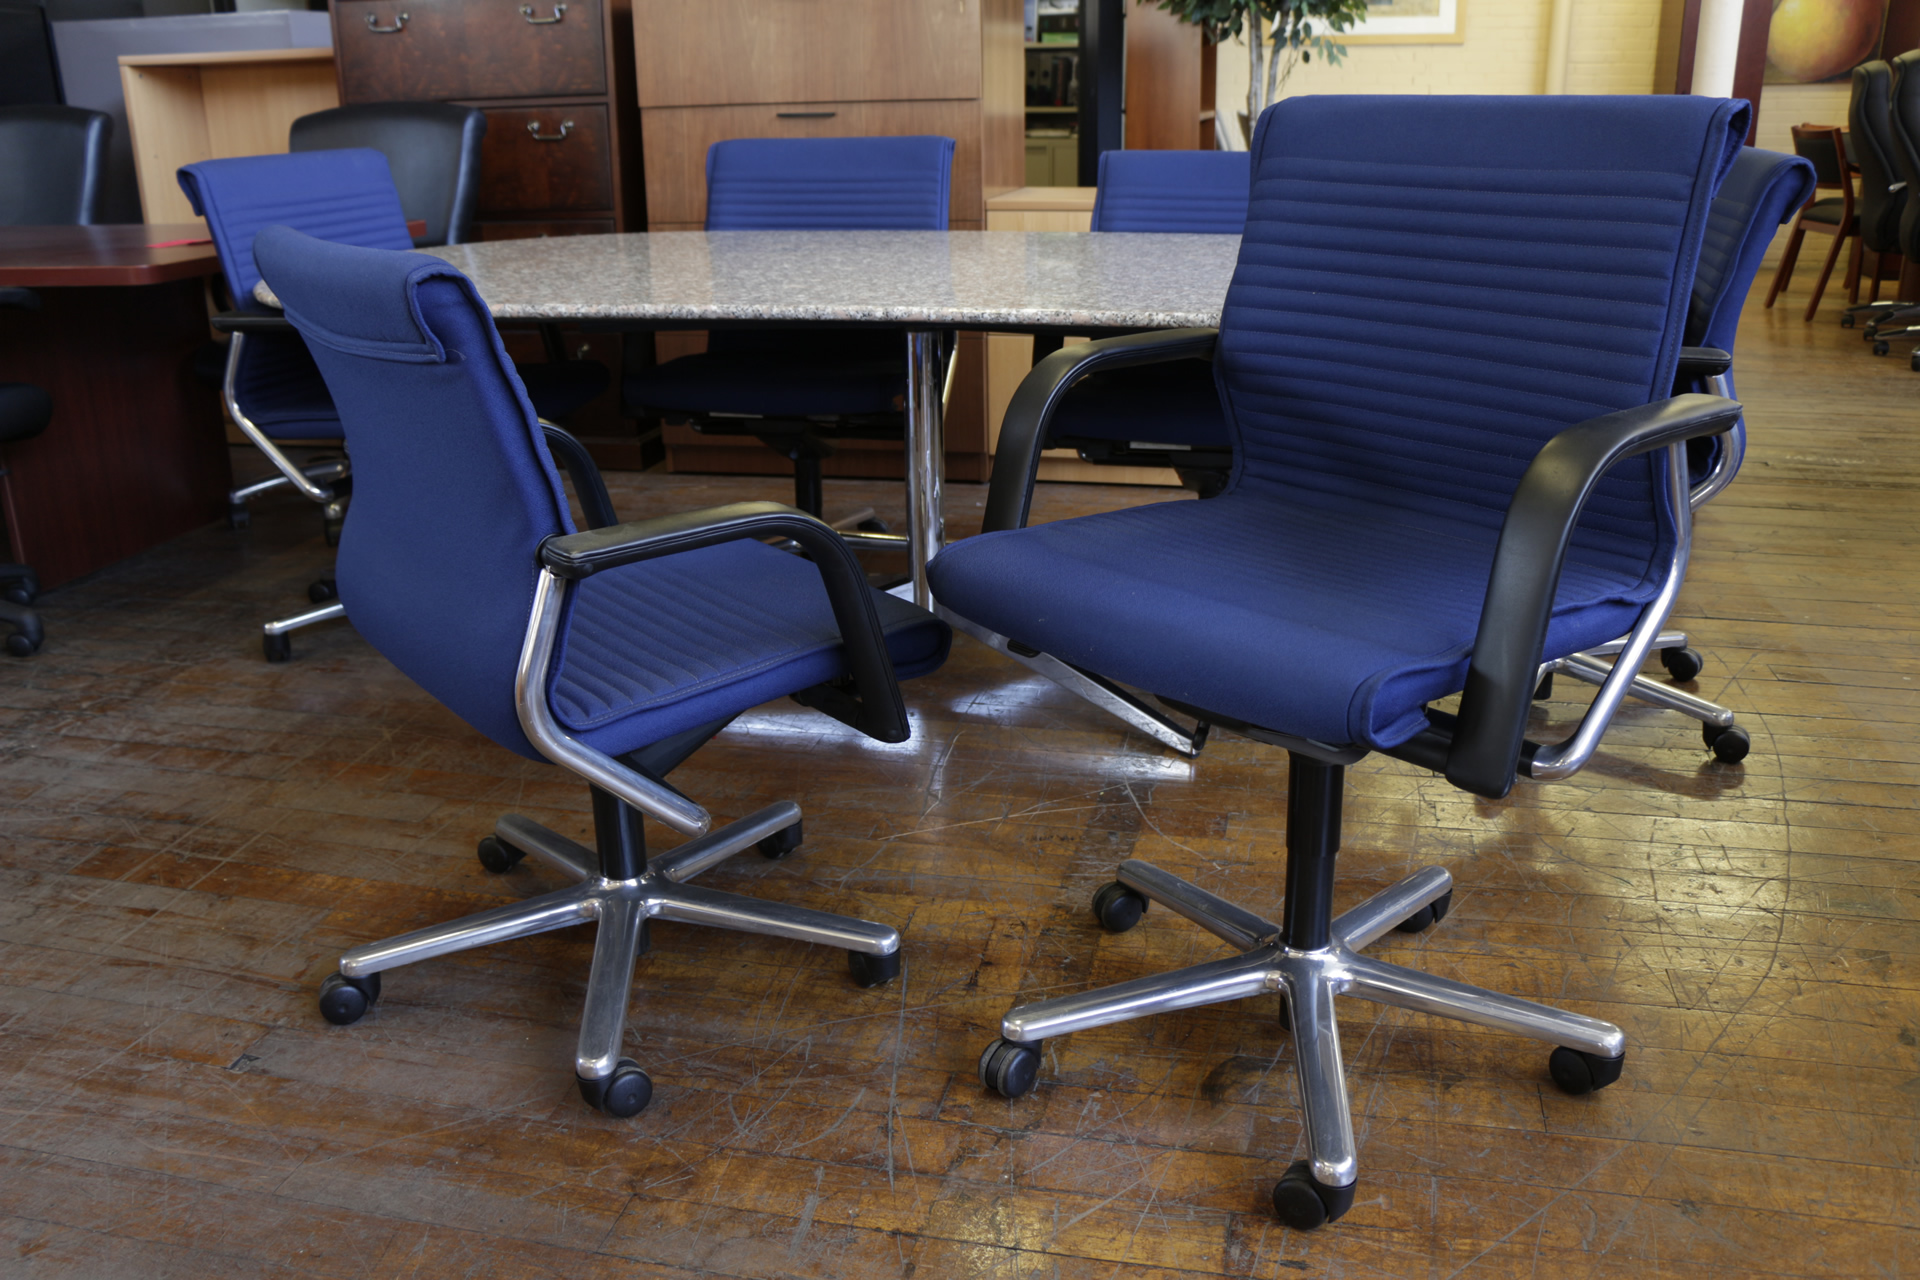 Blue Vecta Conference Chairs With Chrome Frame (Used)